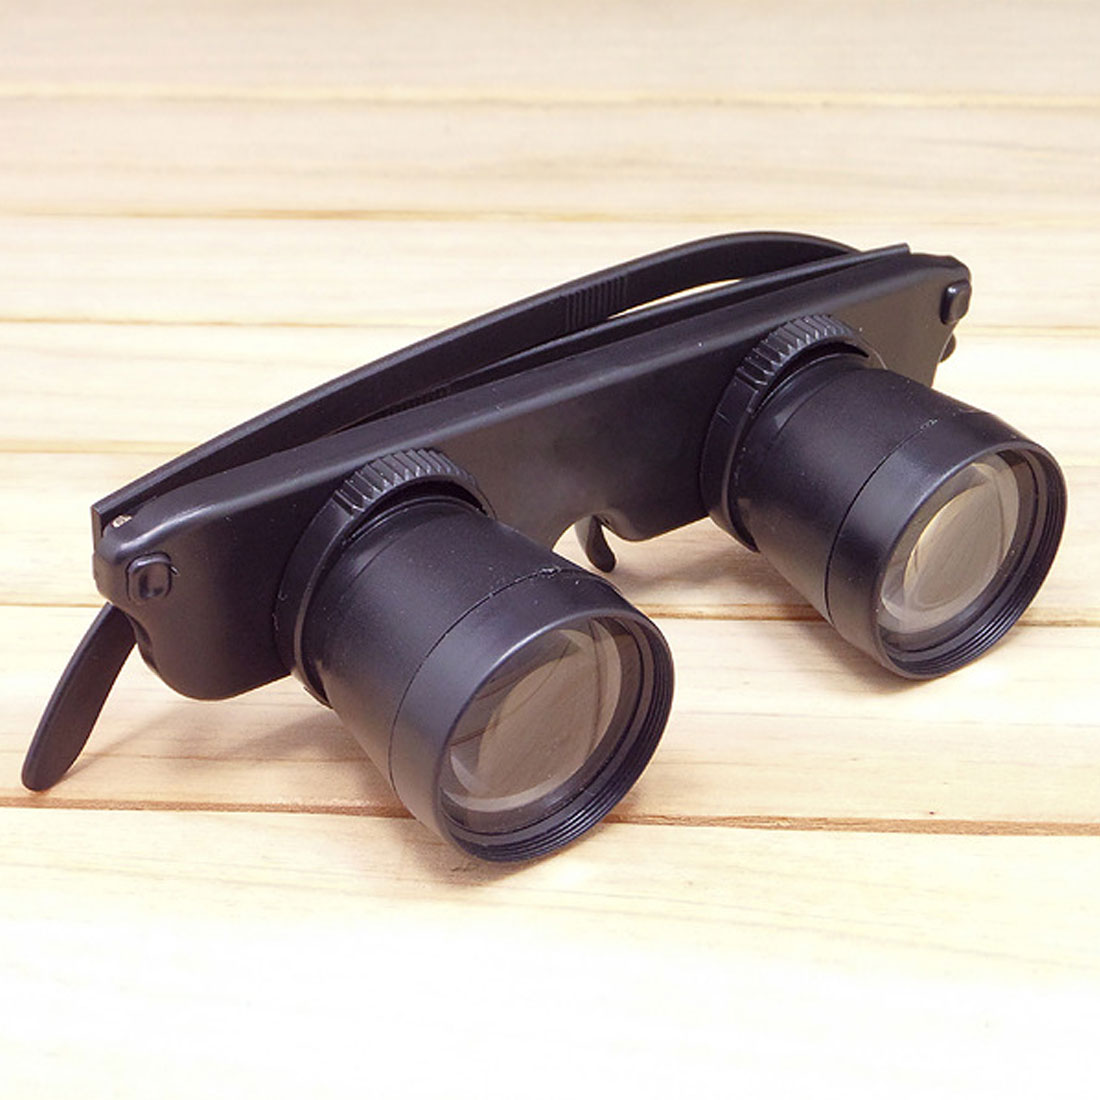 28mm Magnifying Glass 3X Magnifier For Outdoor Fishing Optics Binoculars Telescope Glasses Style Black